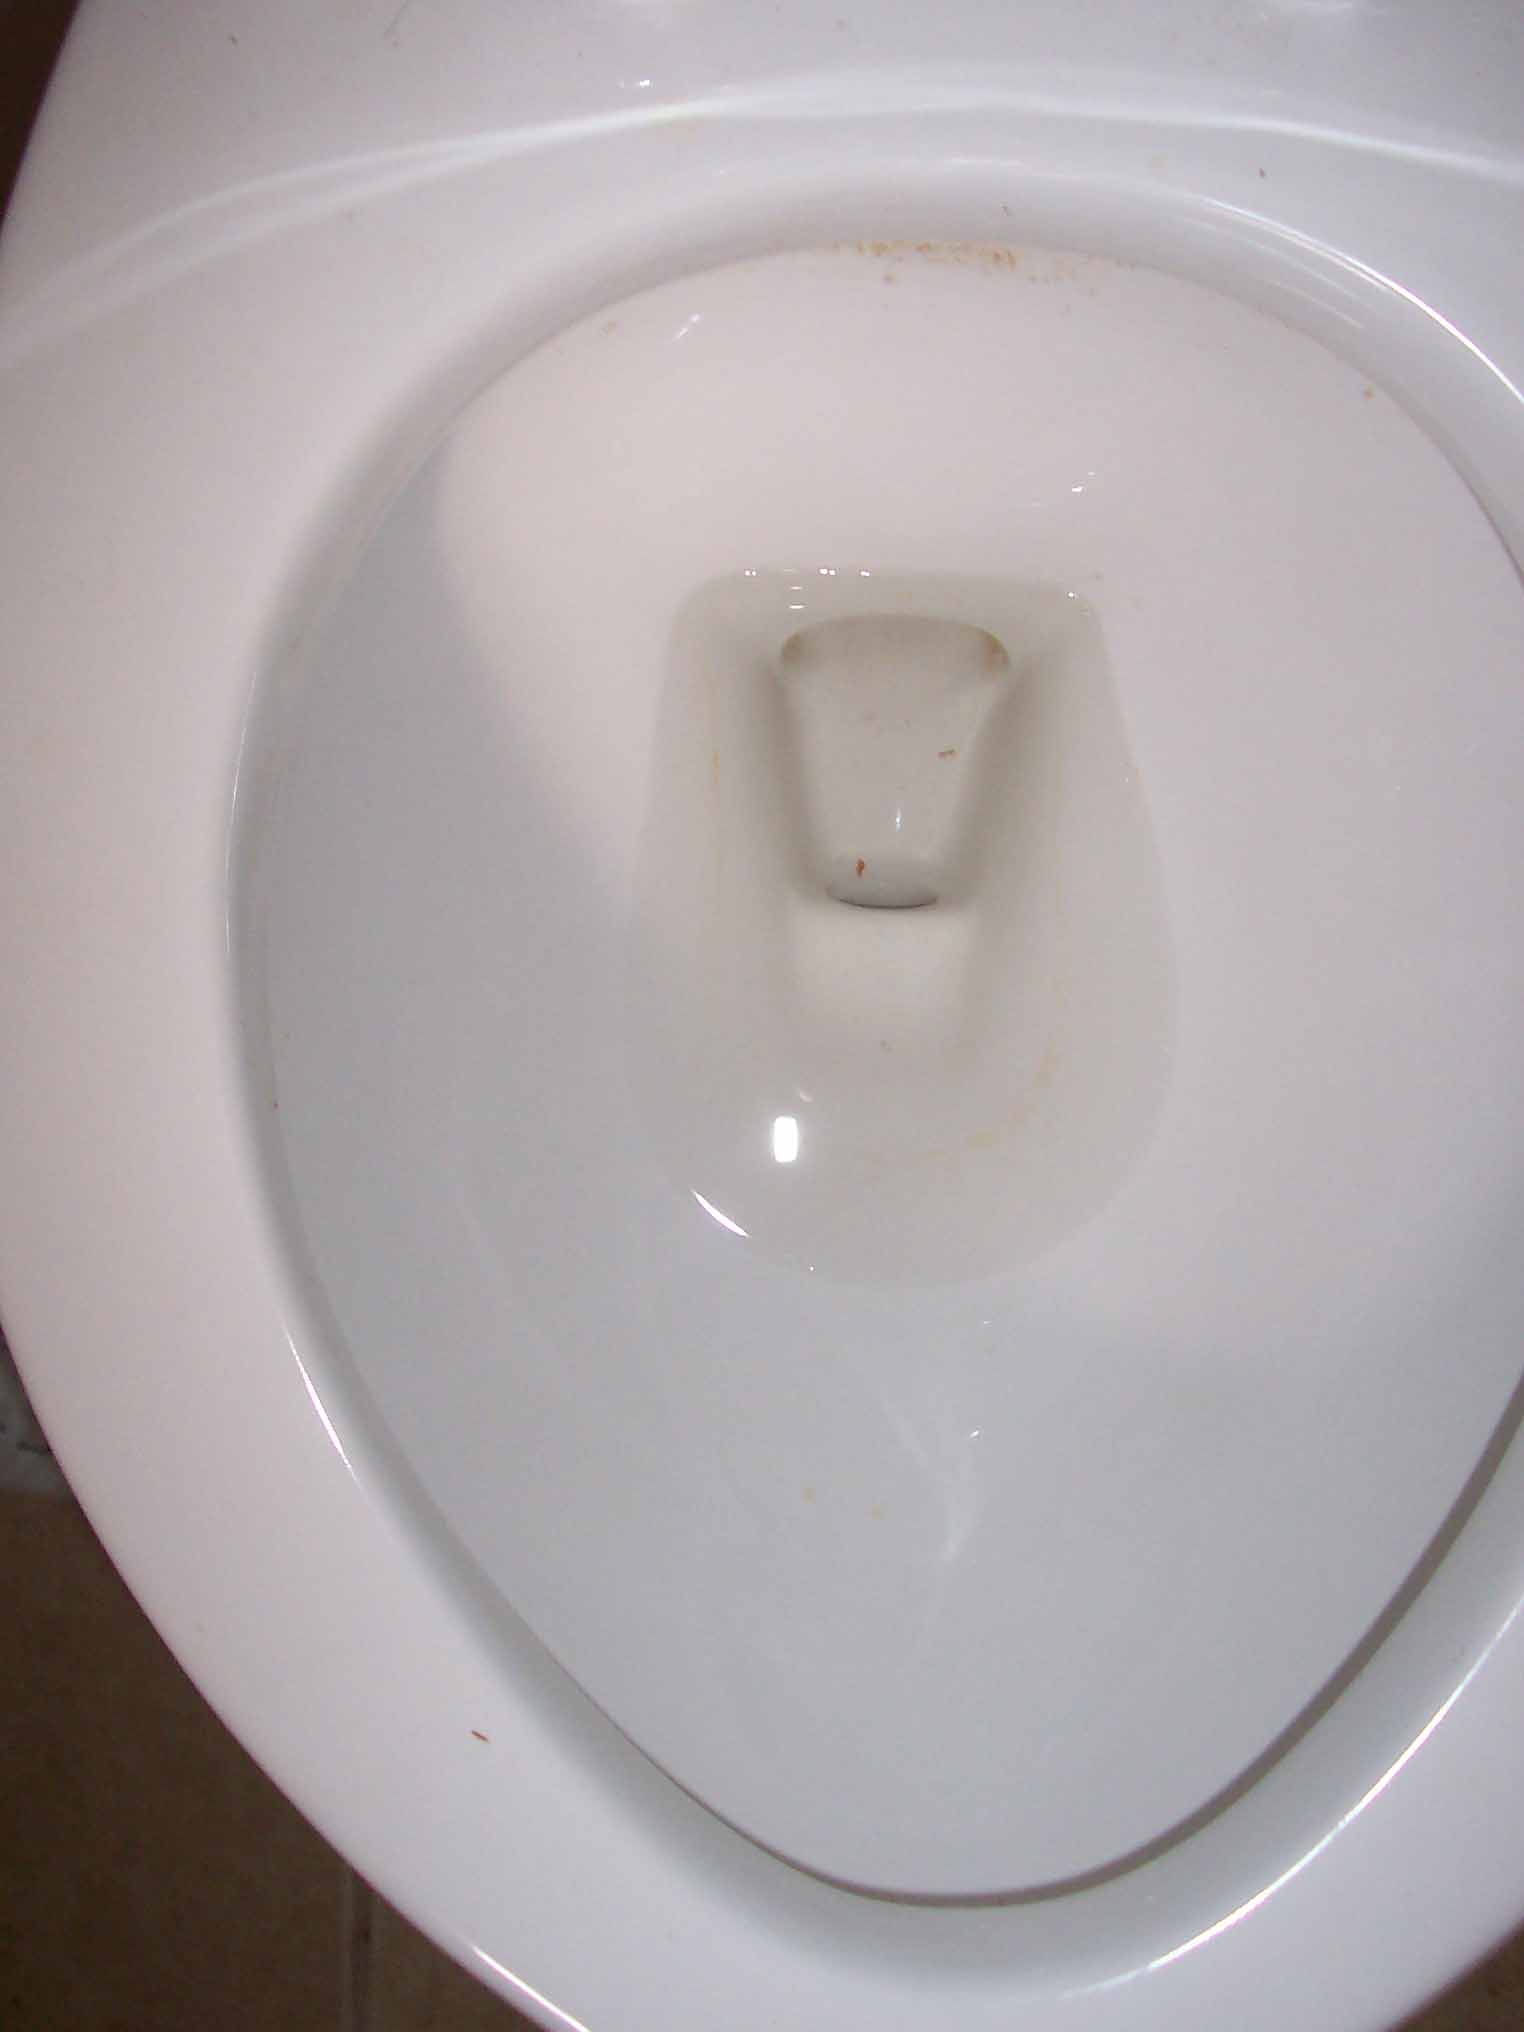 Sharon Reed Toilet Bowl Rust Removed After Edfred Cling N Clean ...